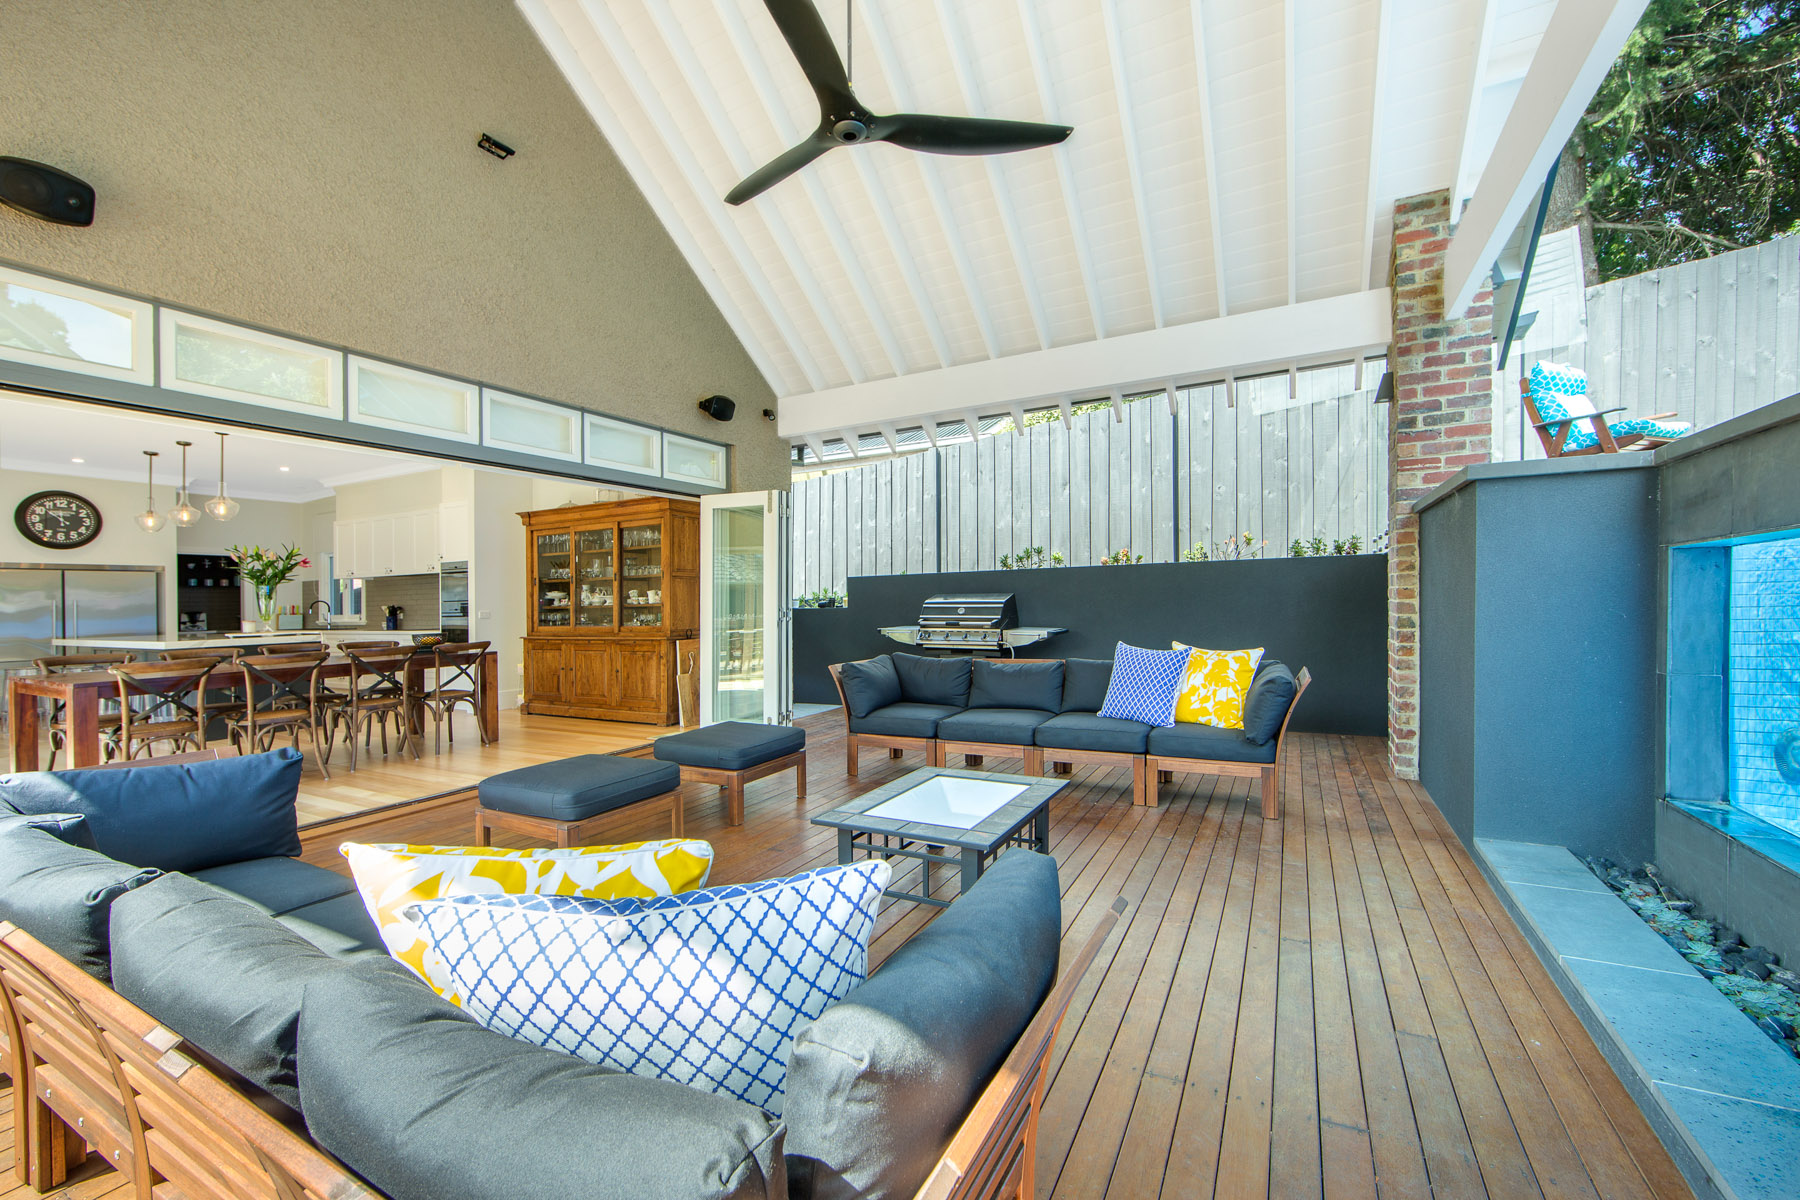 What Features Add Most Value Home Renovation decking